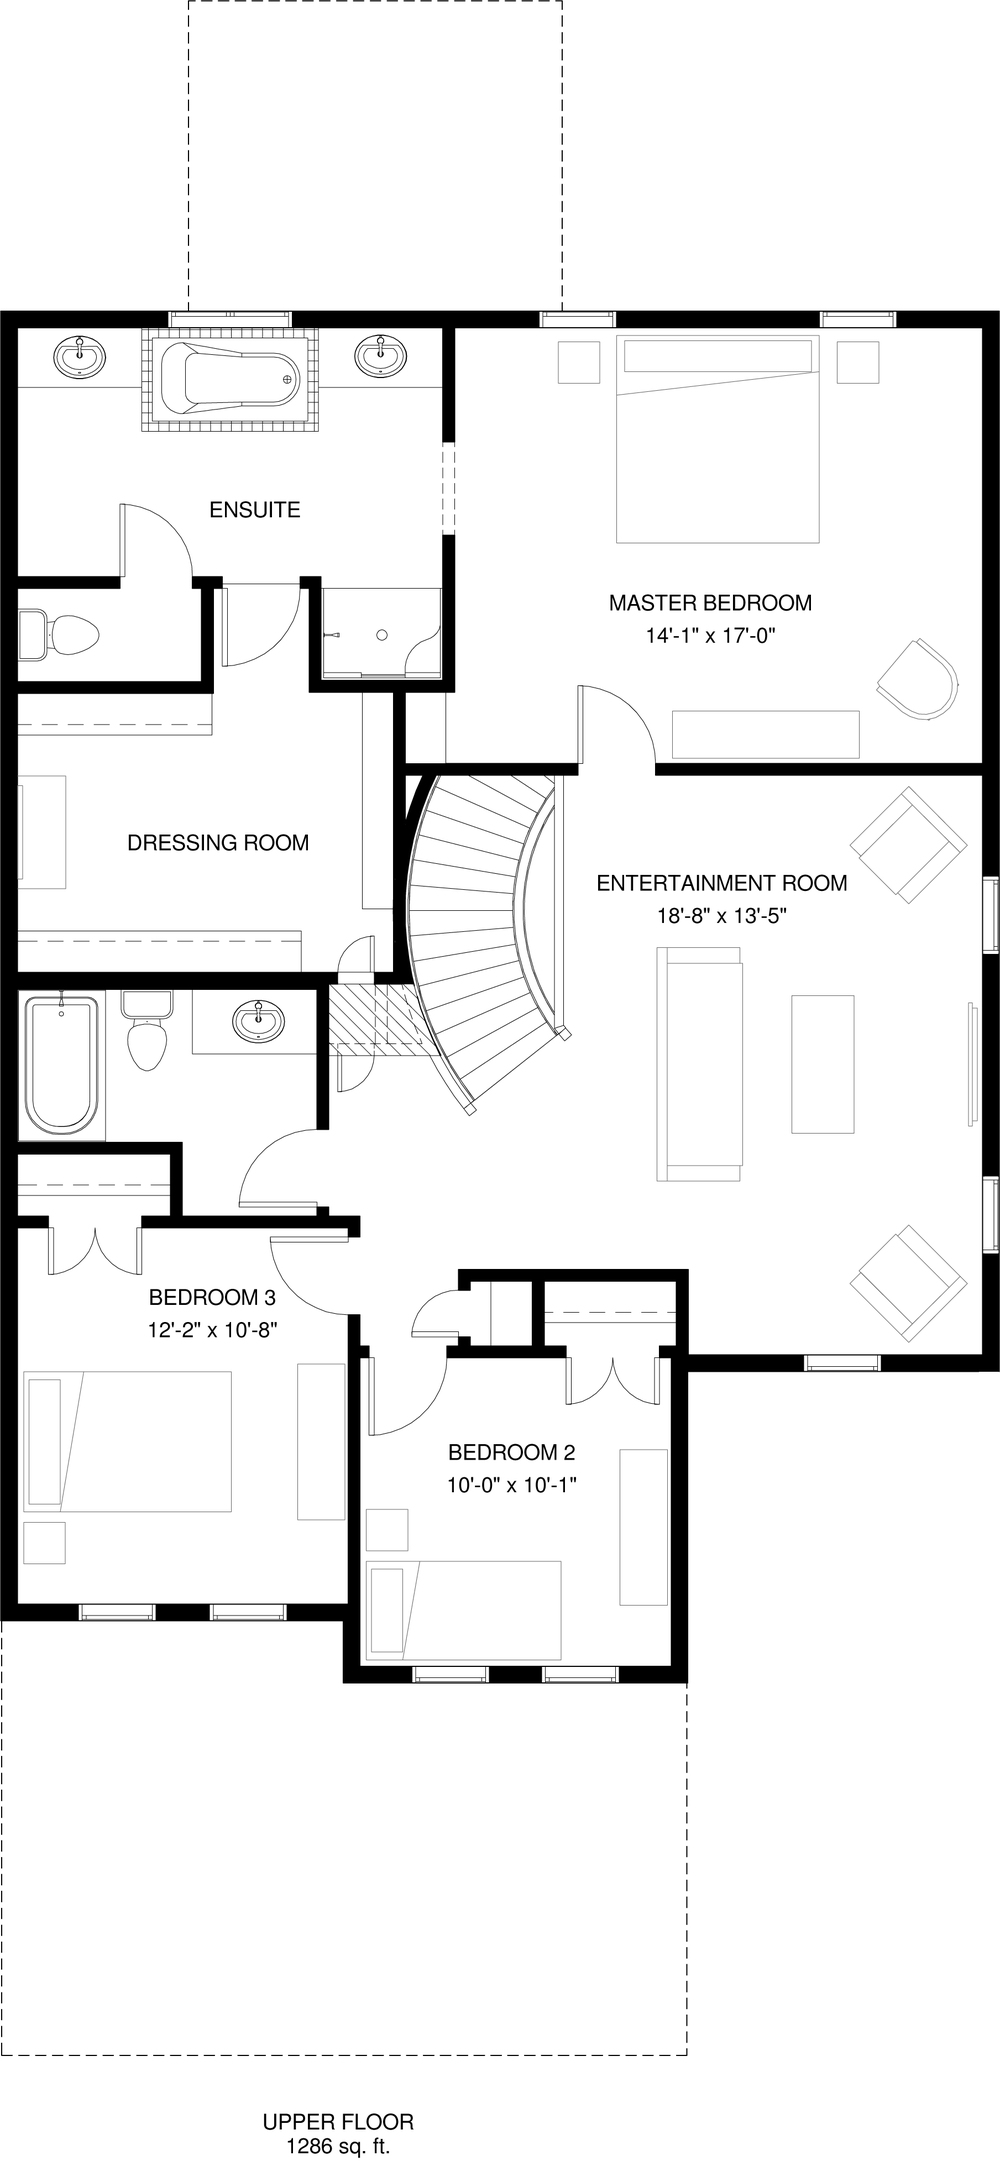 Upper Floor  1286 sq ft